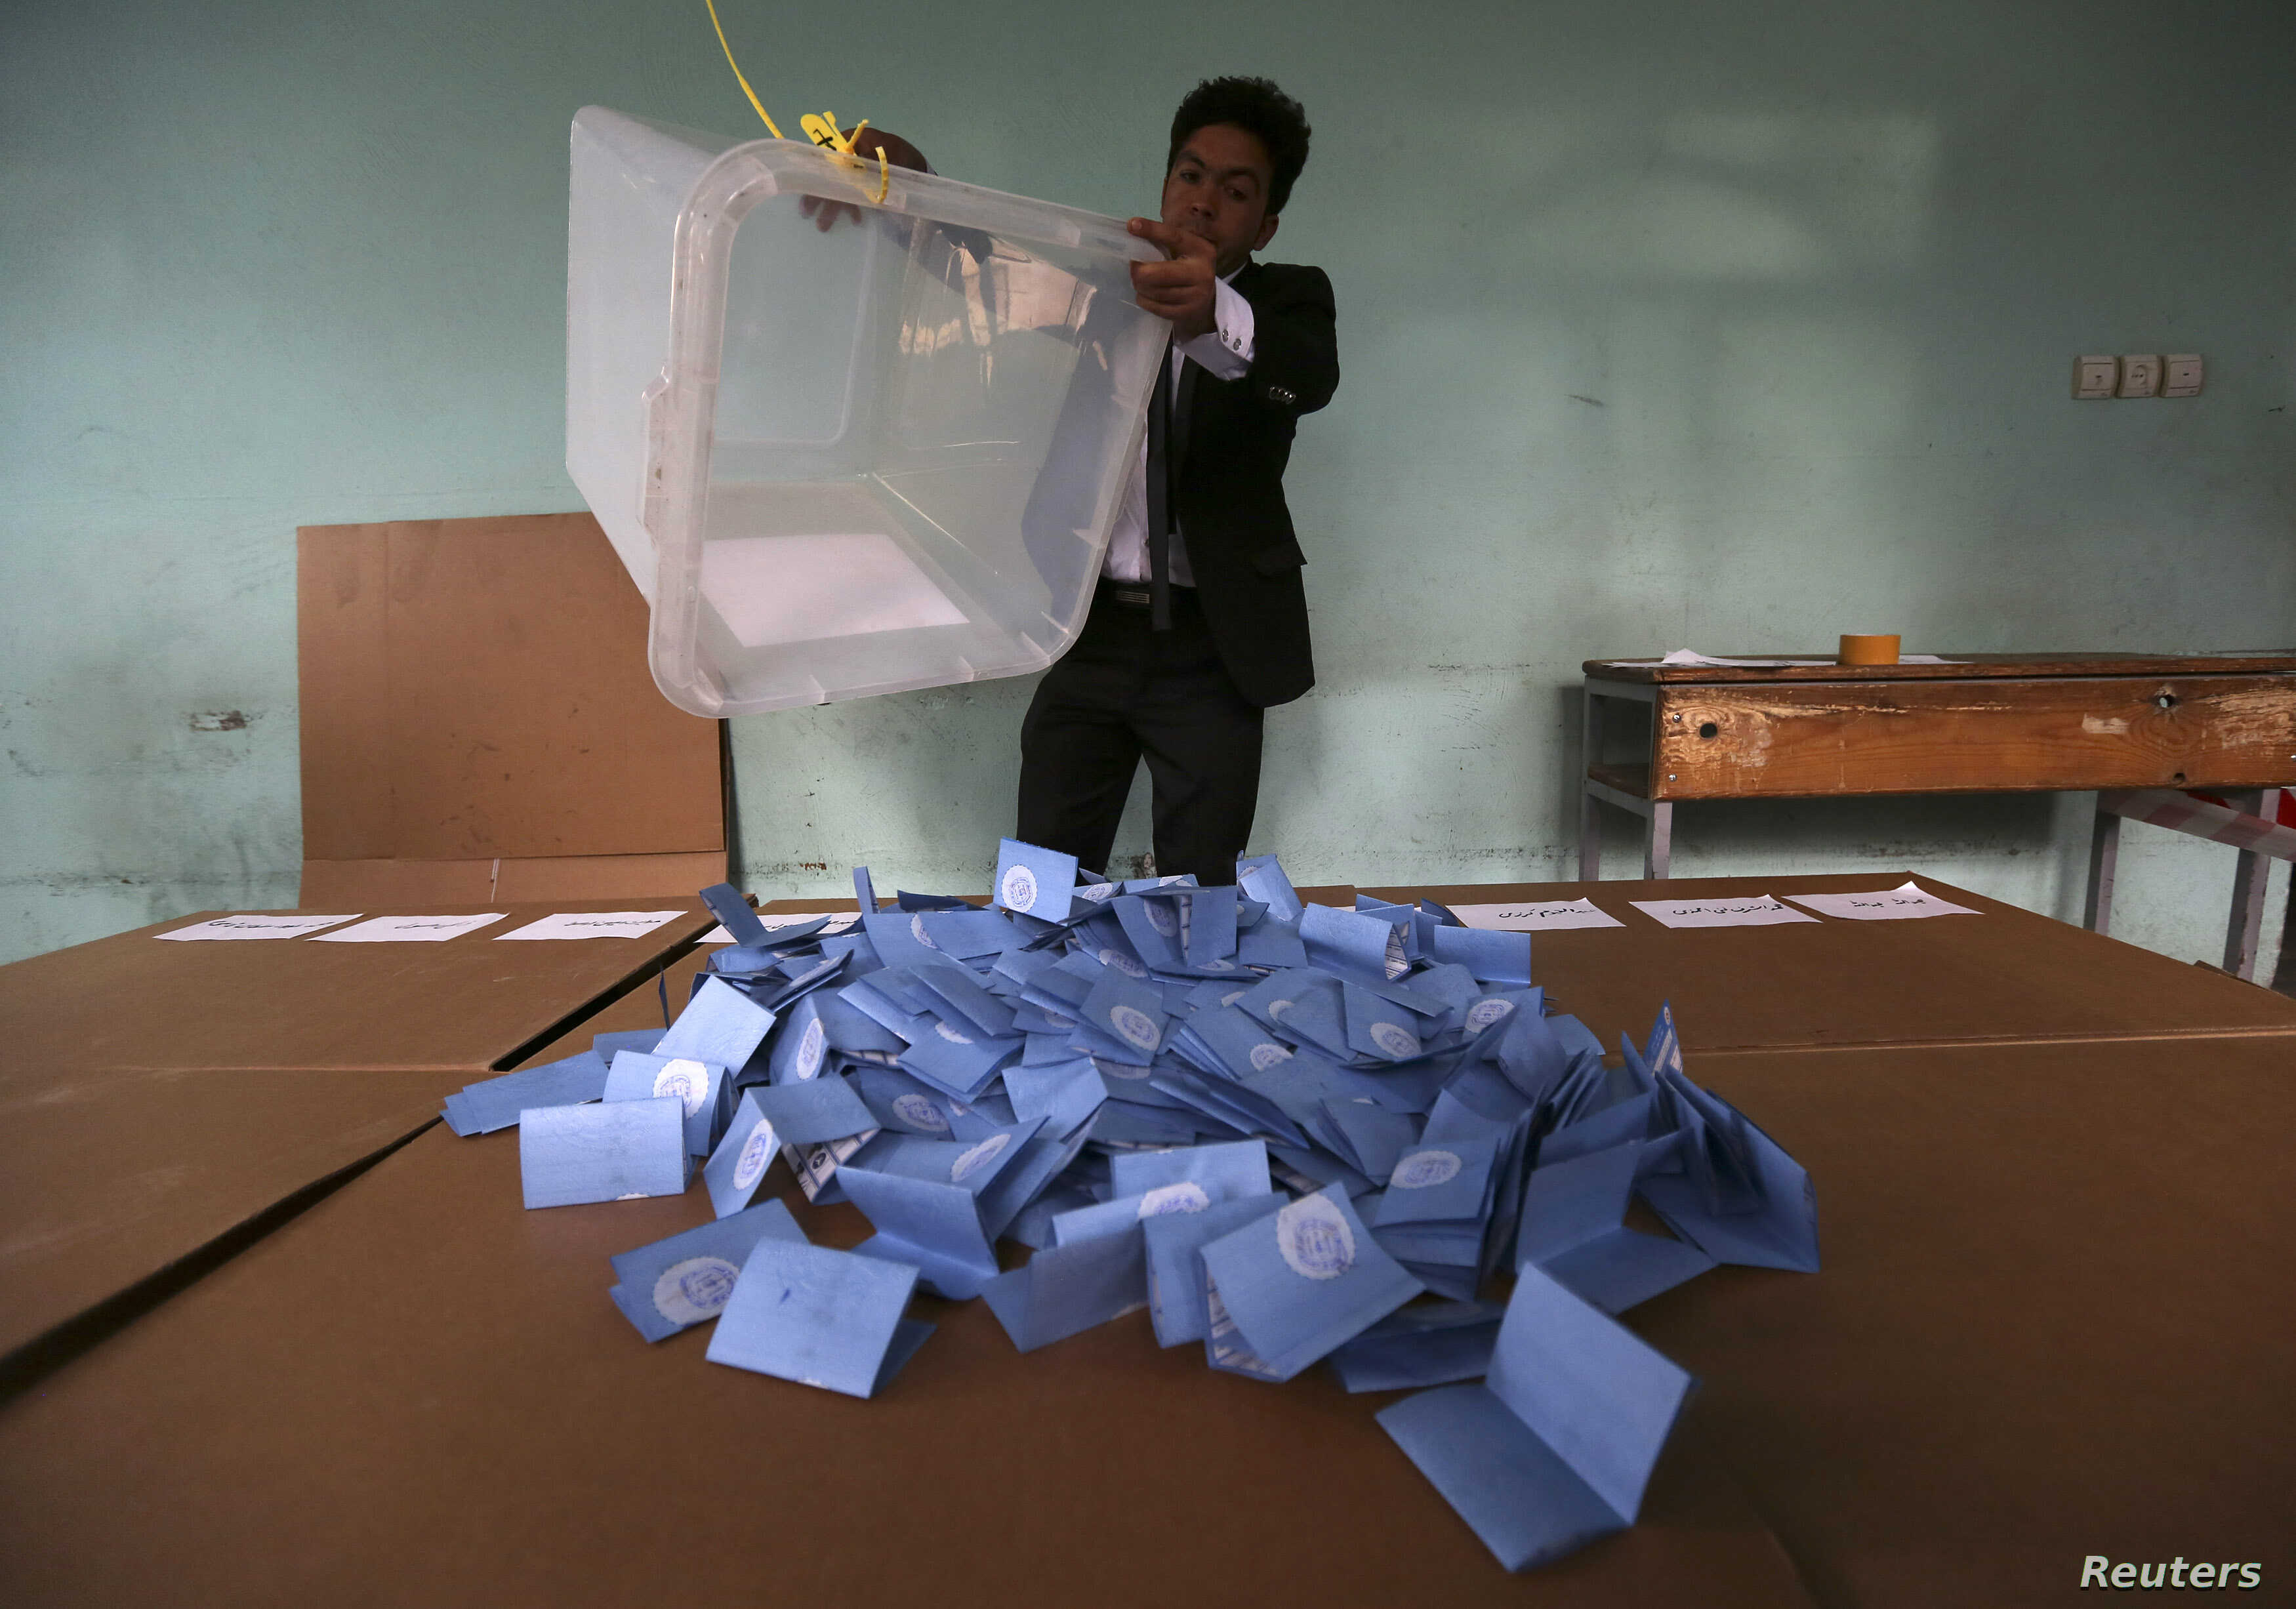 An Afghan election official empties a ballot box for counting at the end of polling in Herat Province, Apr. 5, 2014.